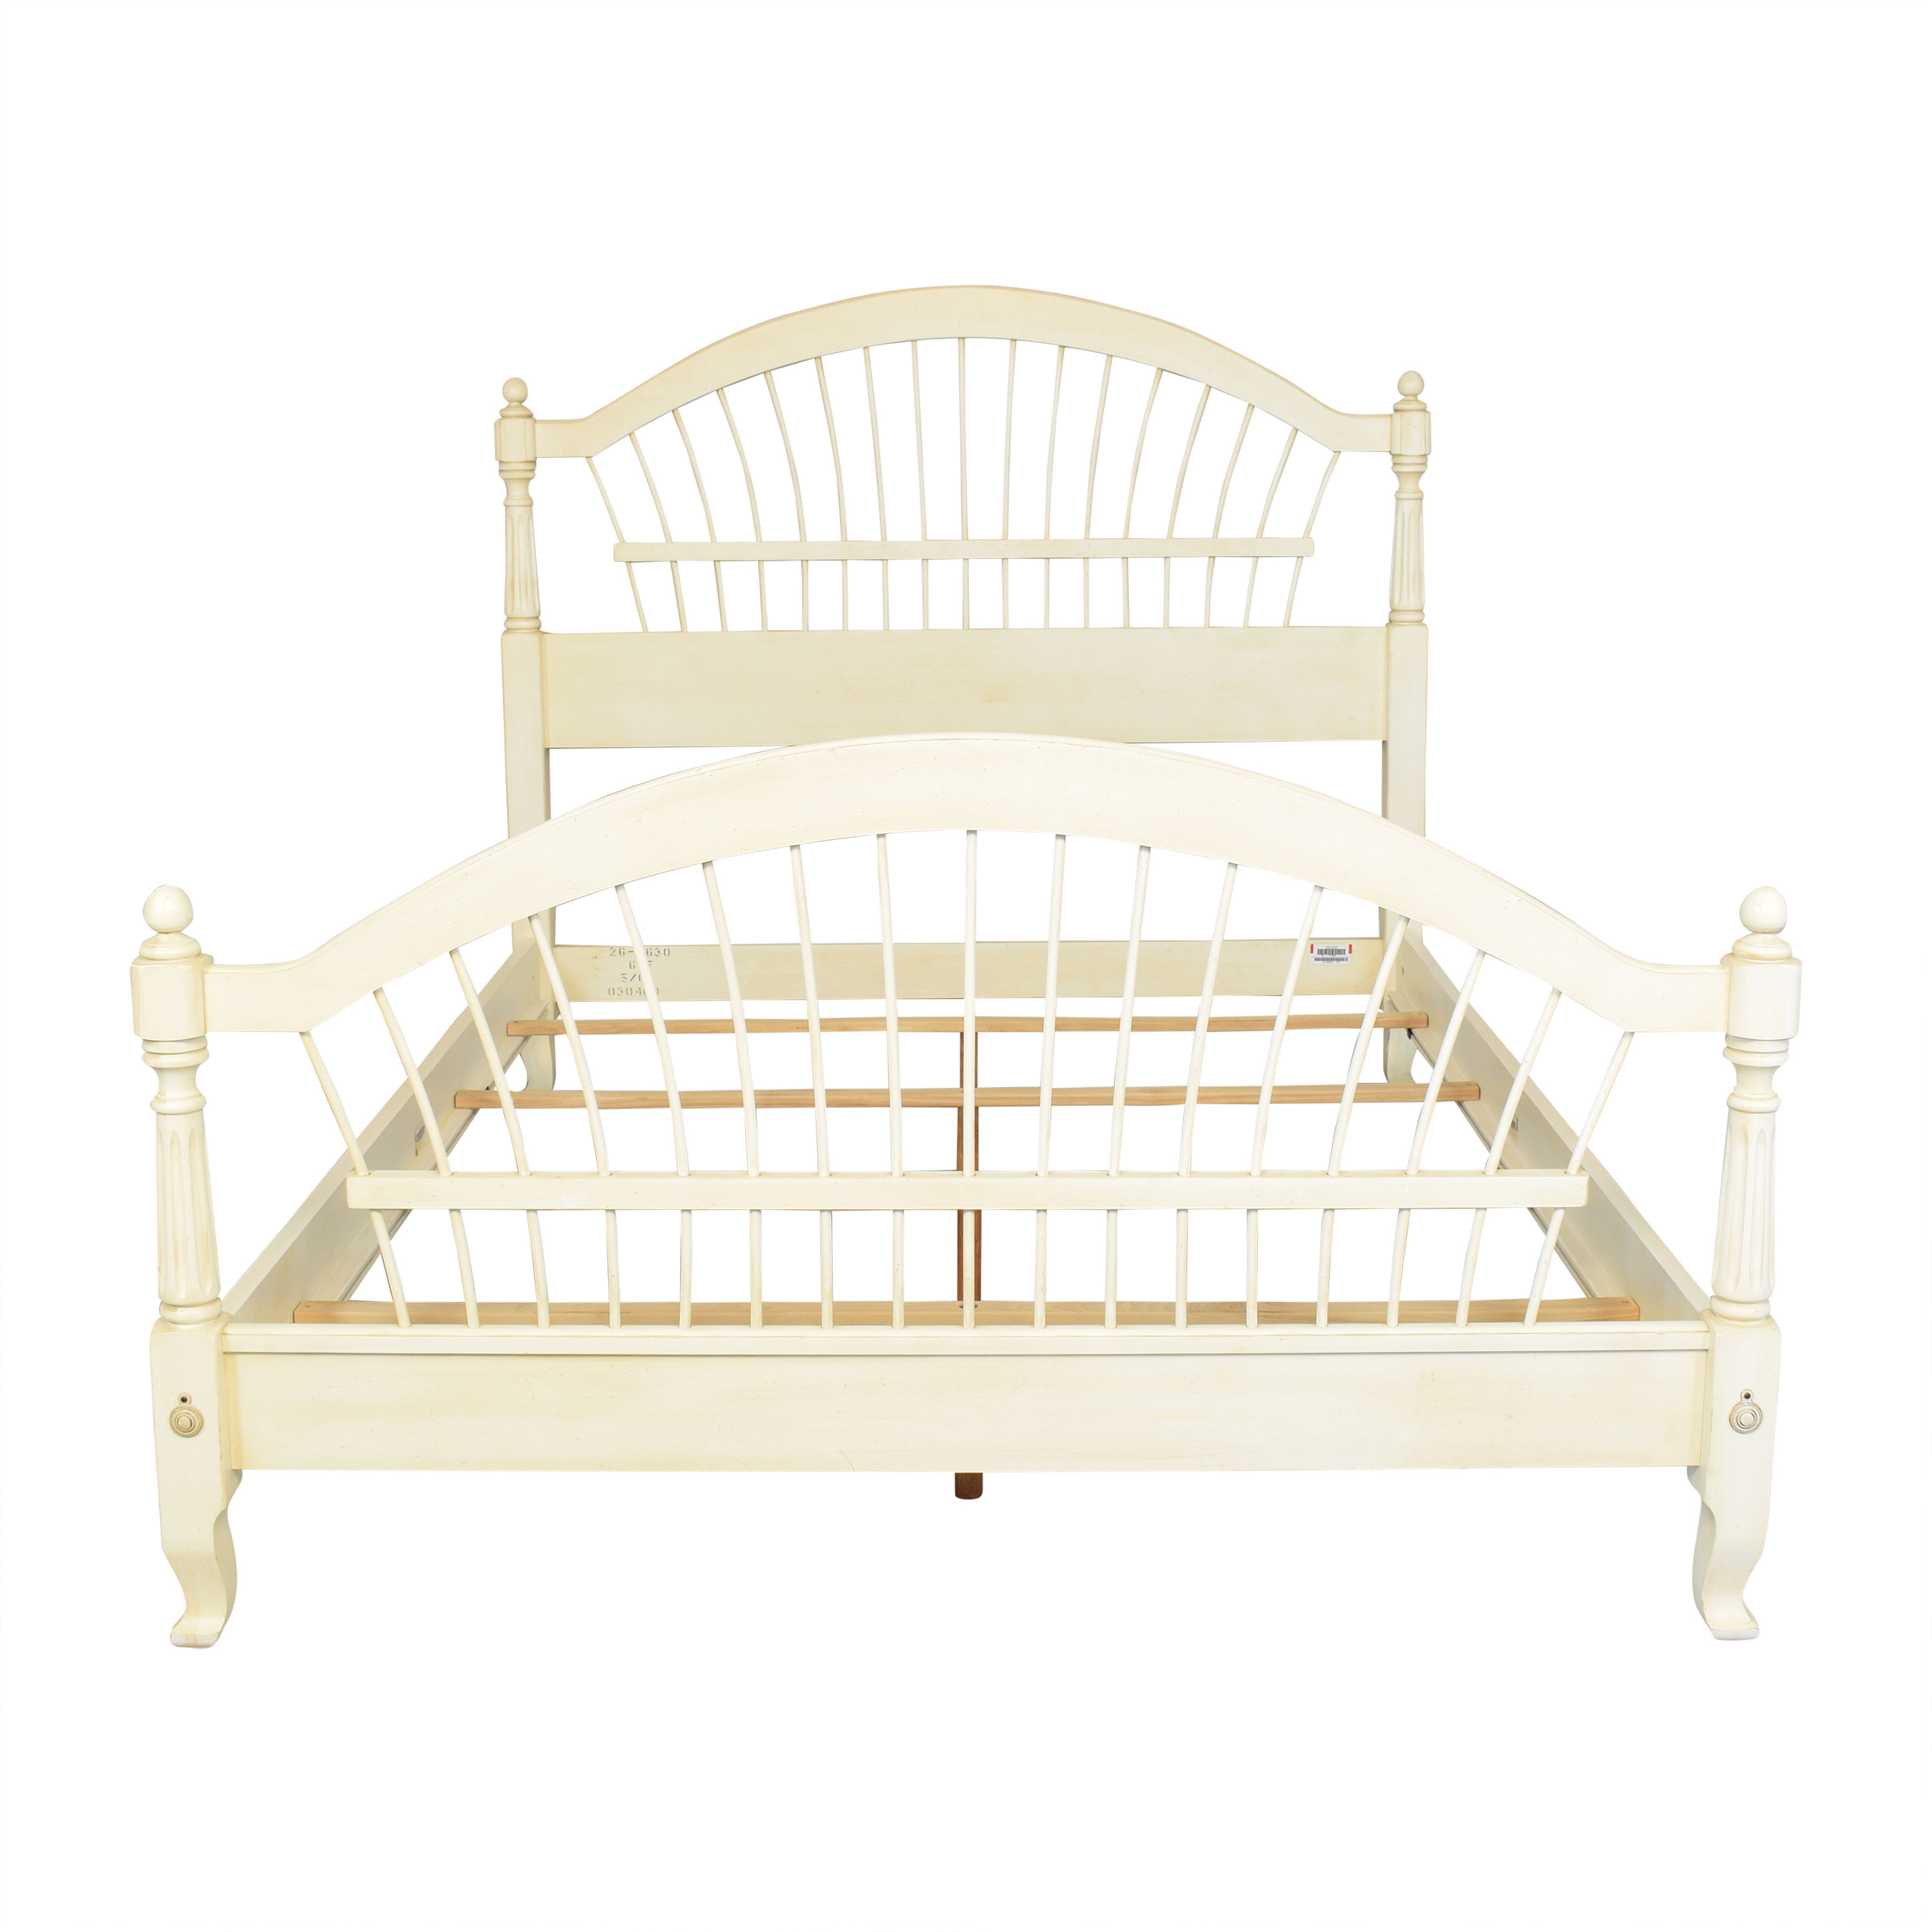 Ethan Allen Ethan Allen Country French Queen Bed discount